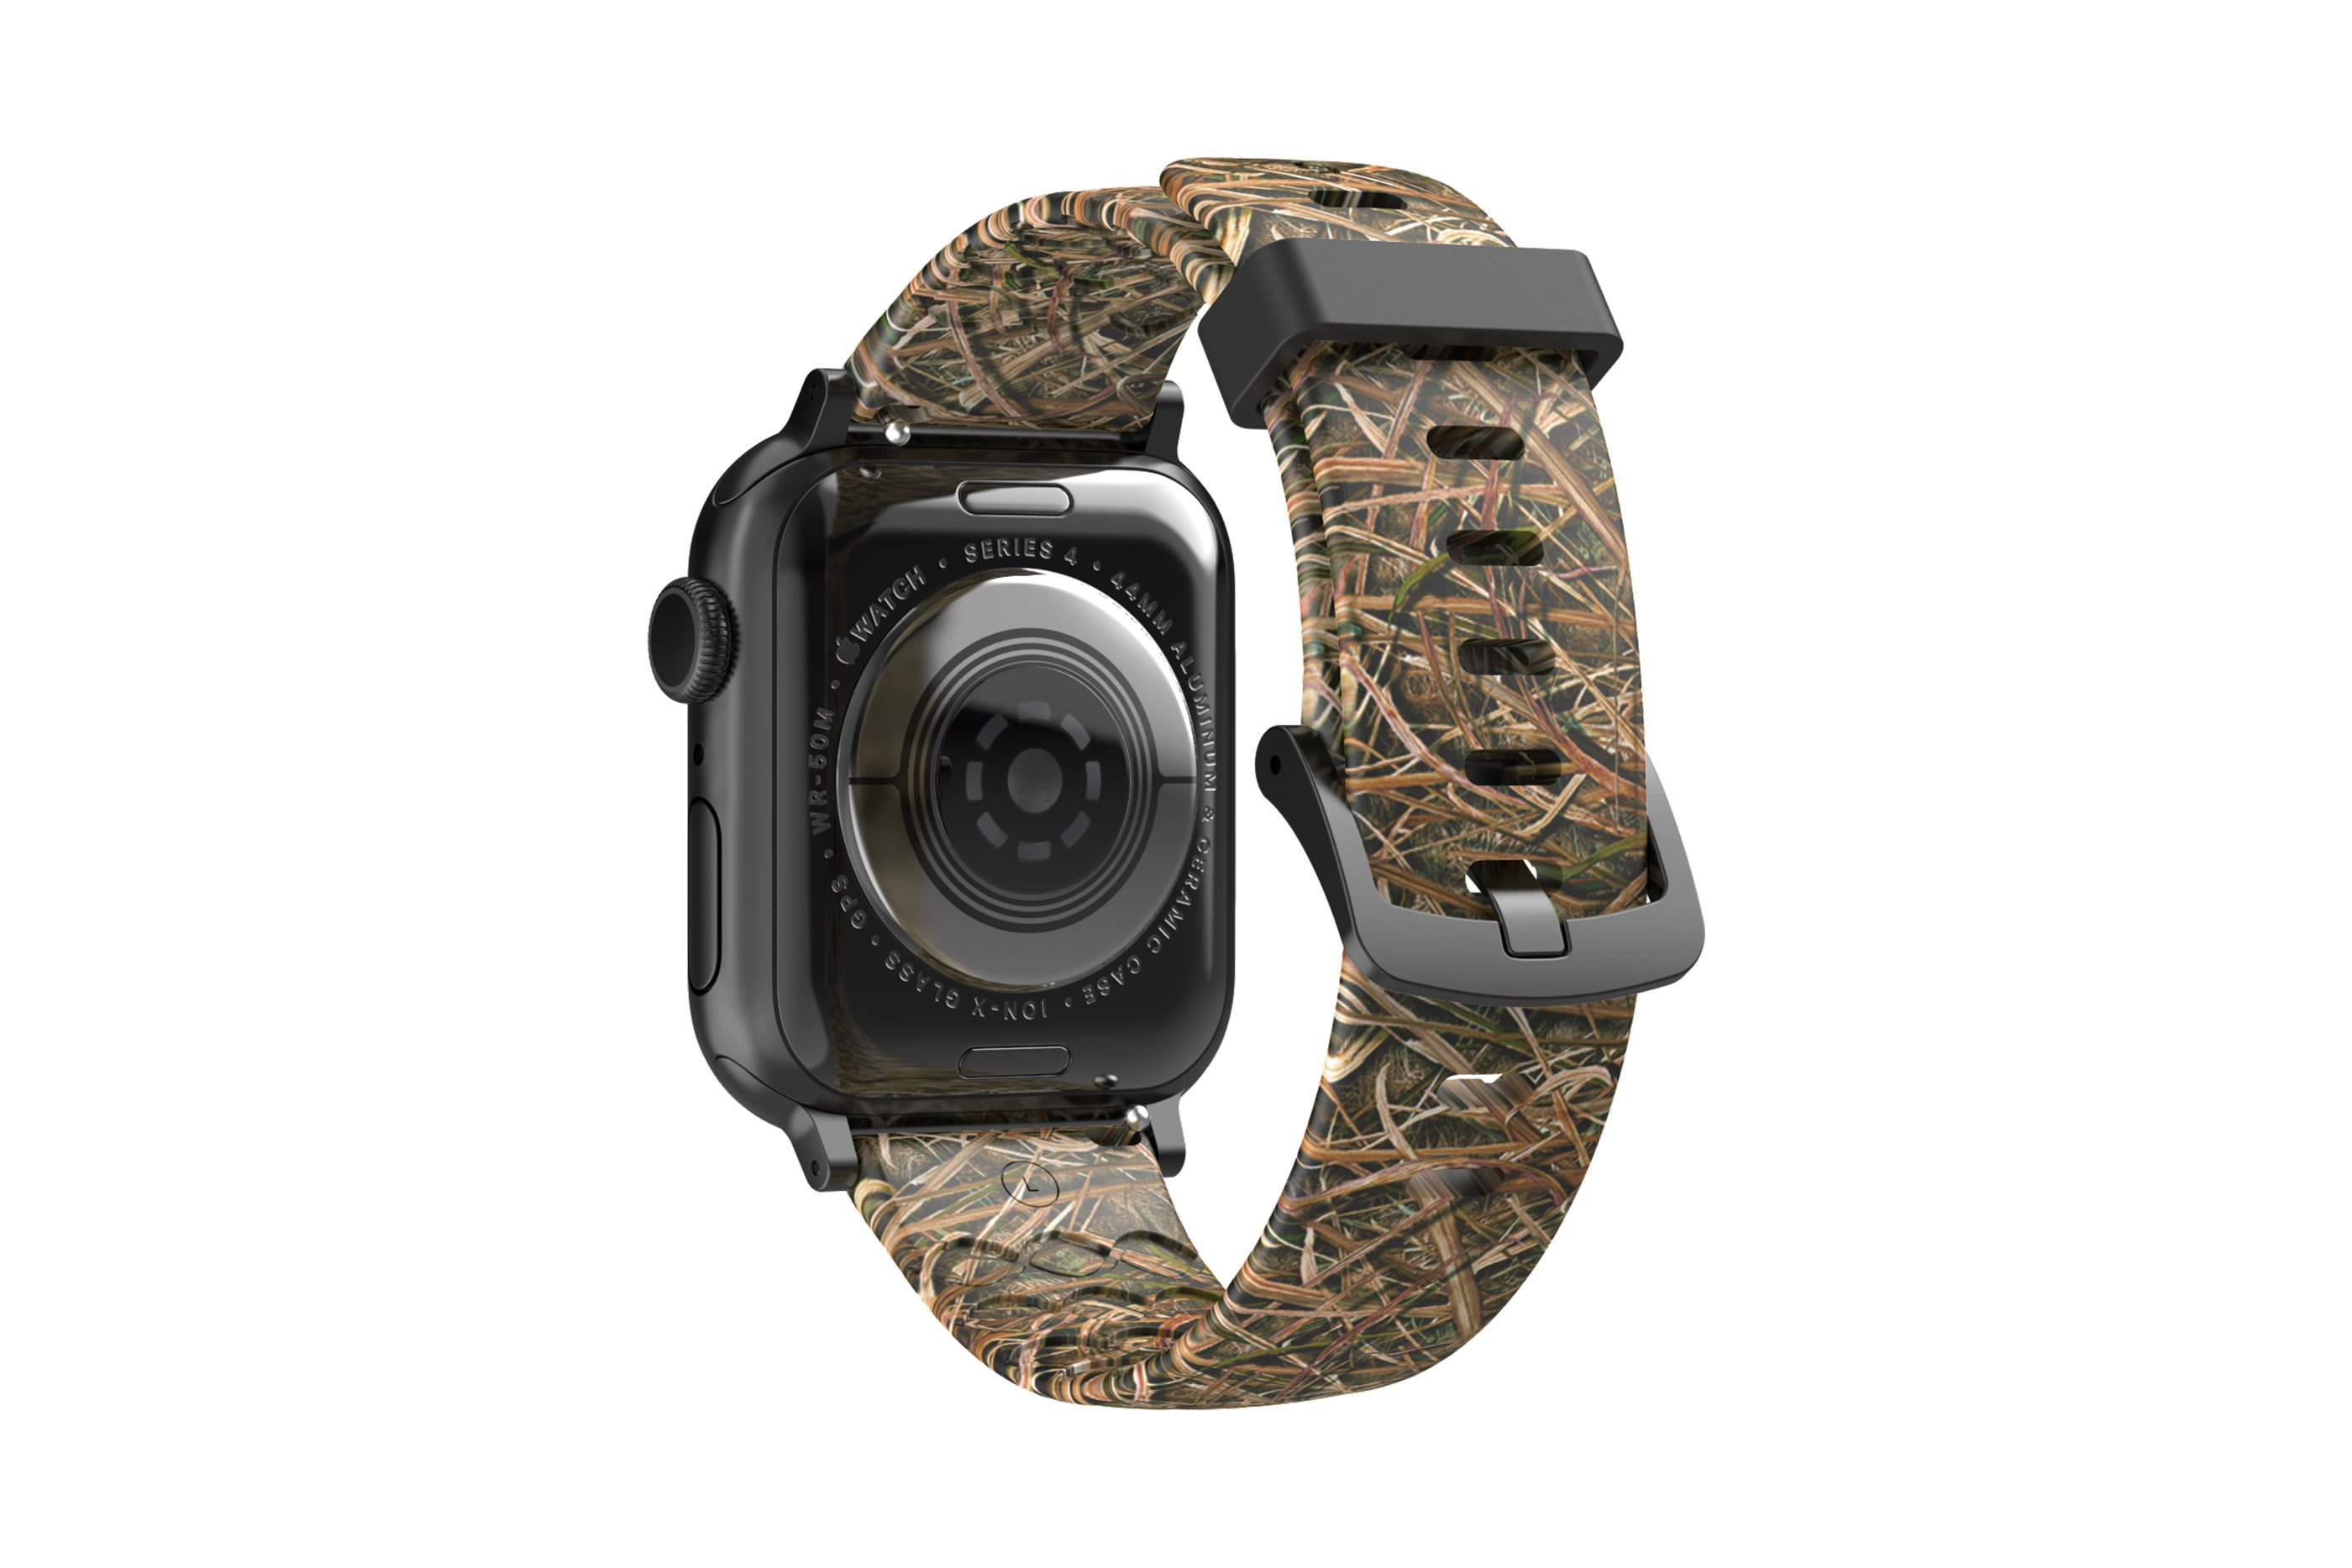 Mossy Oak Blades Apple Watch Band with gray hardware viewed from rear